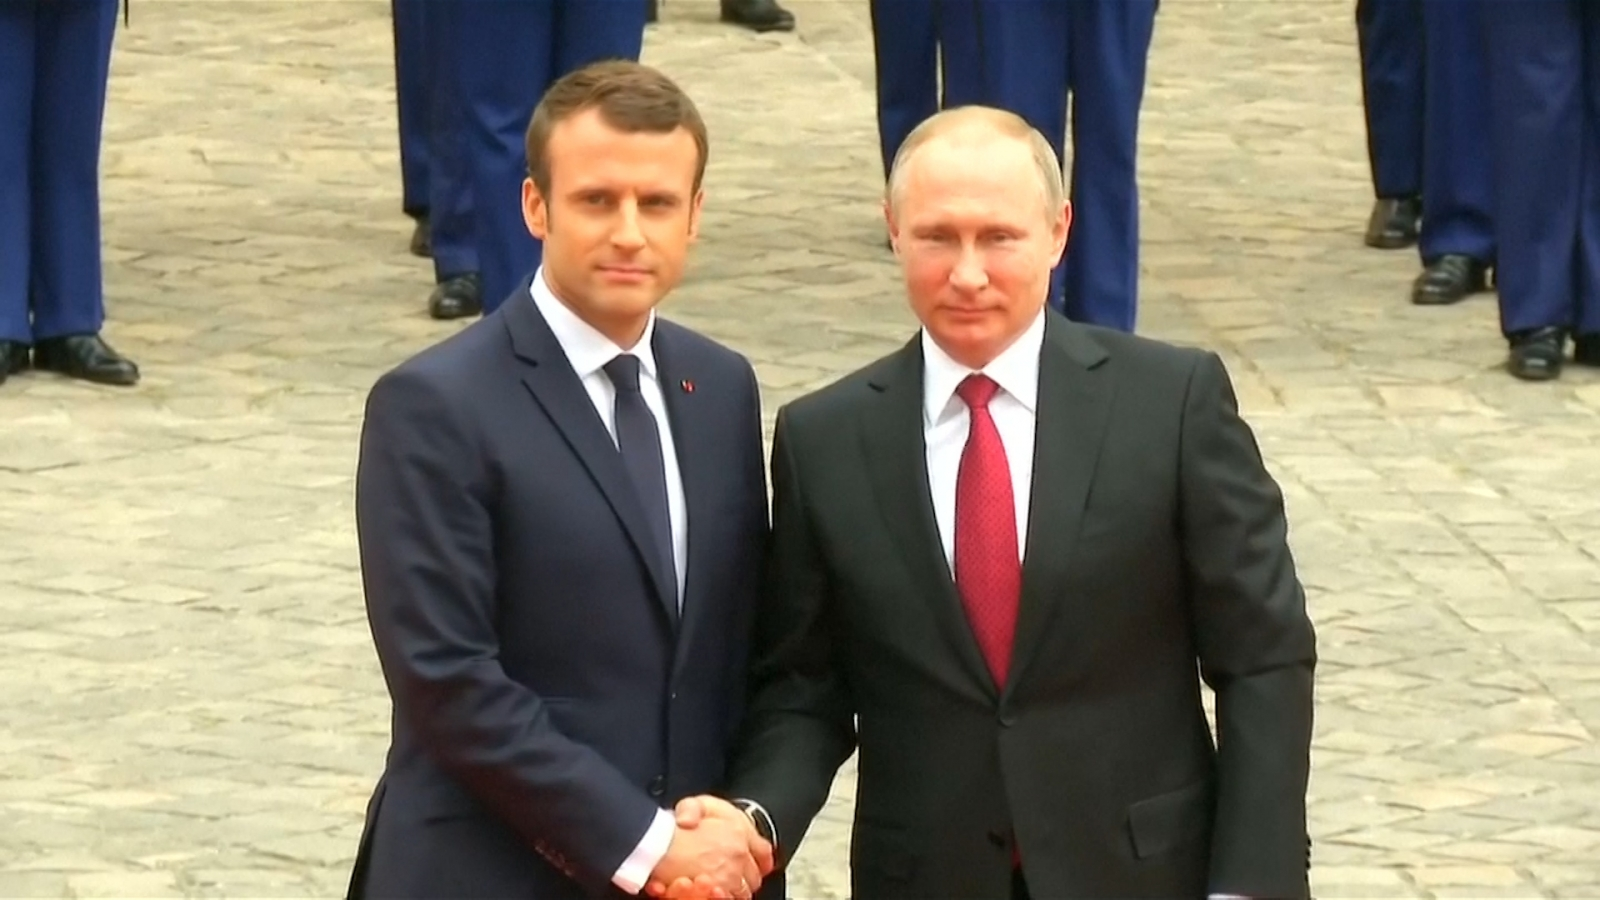 french-president-macron-welcomes-russian-president-putin-at-frances-palace-of-versailles